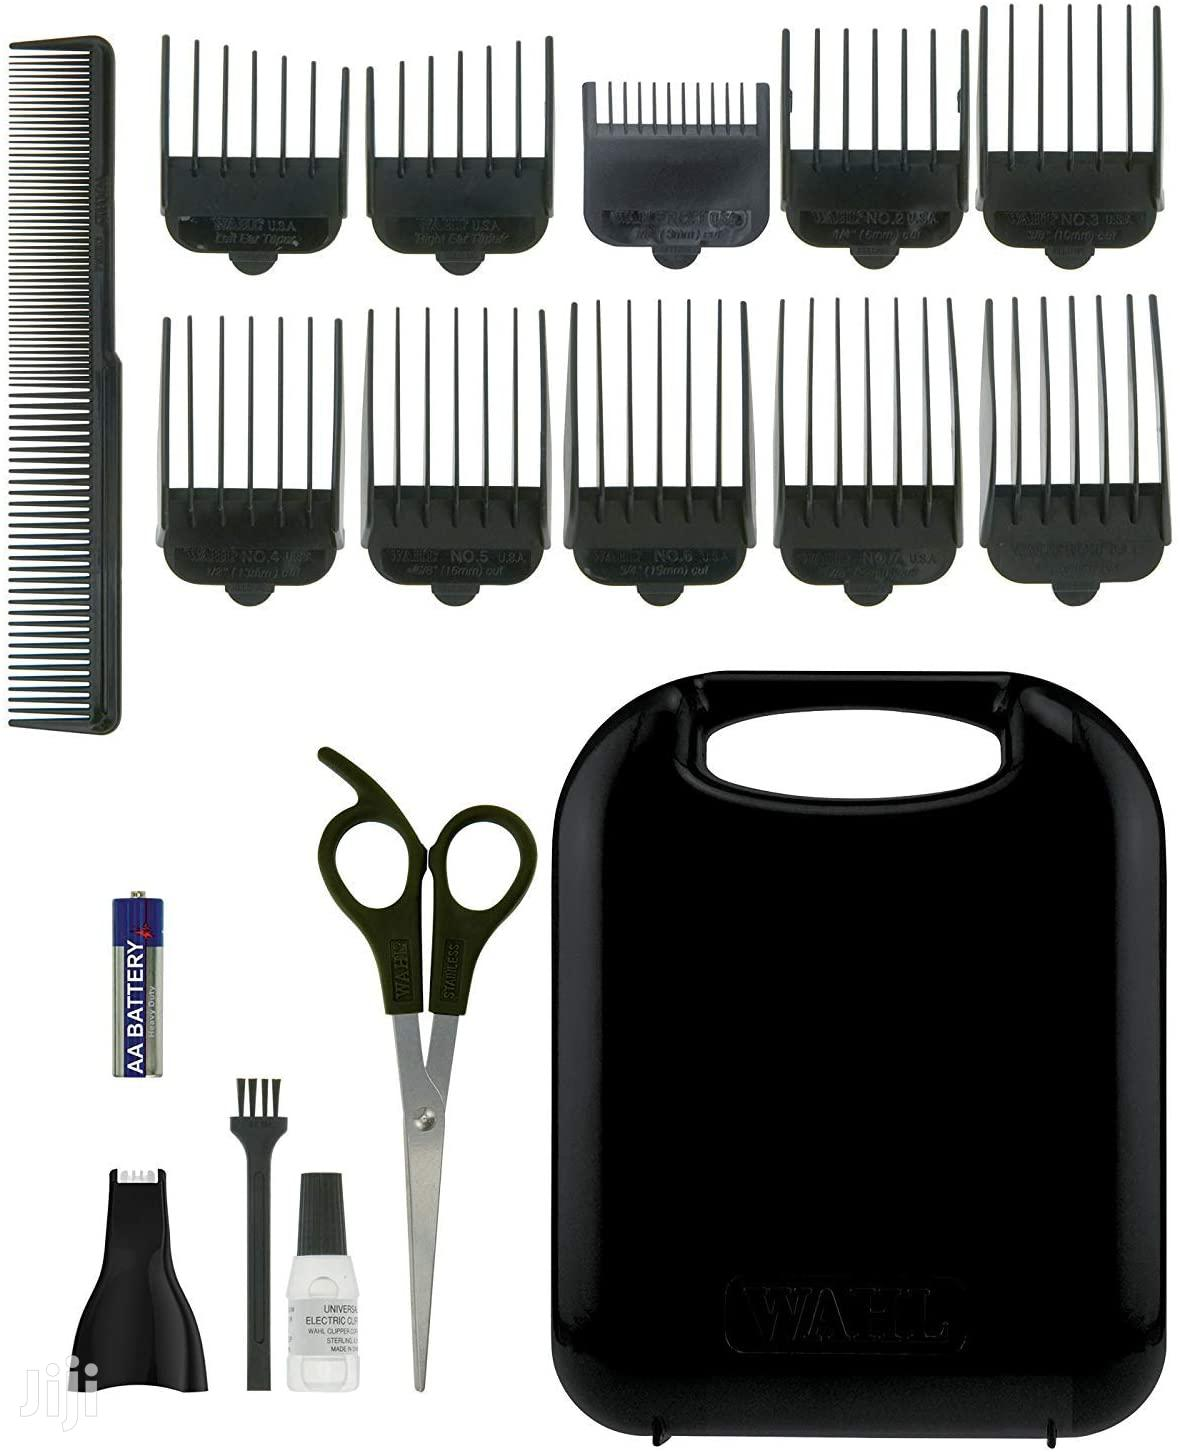 Groom Ease By Wahl   Tools & Accessories for sale in Abelemkpe, Greater Accra, Ghana